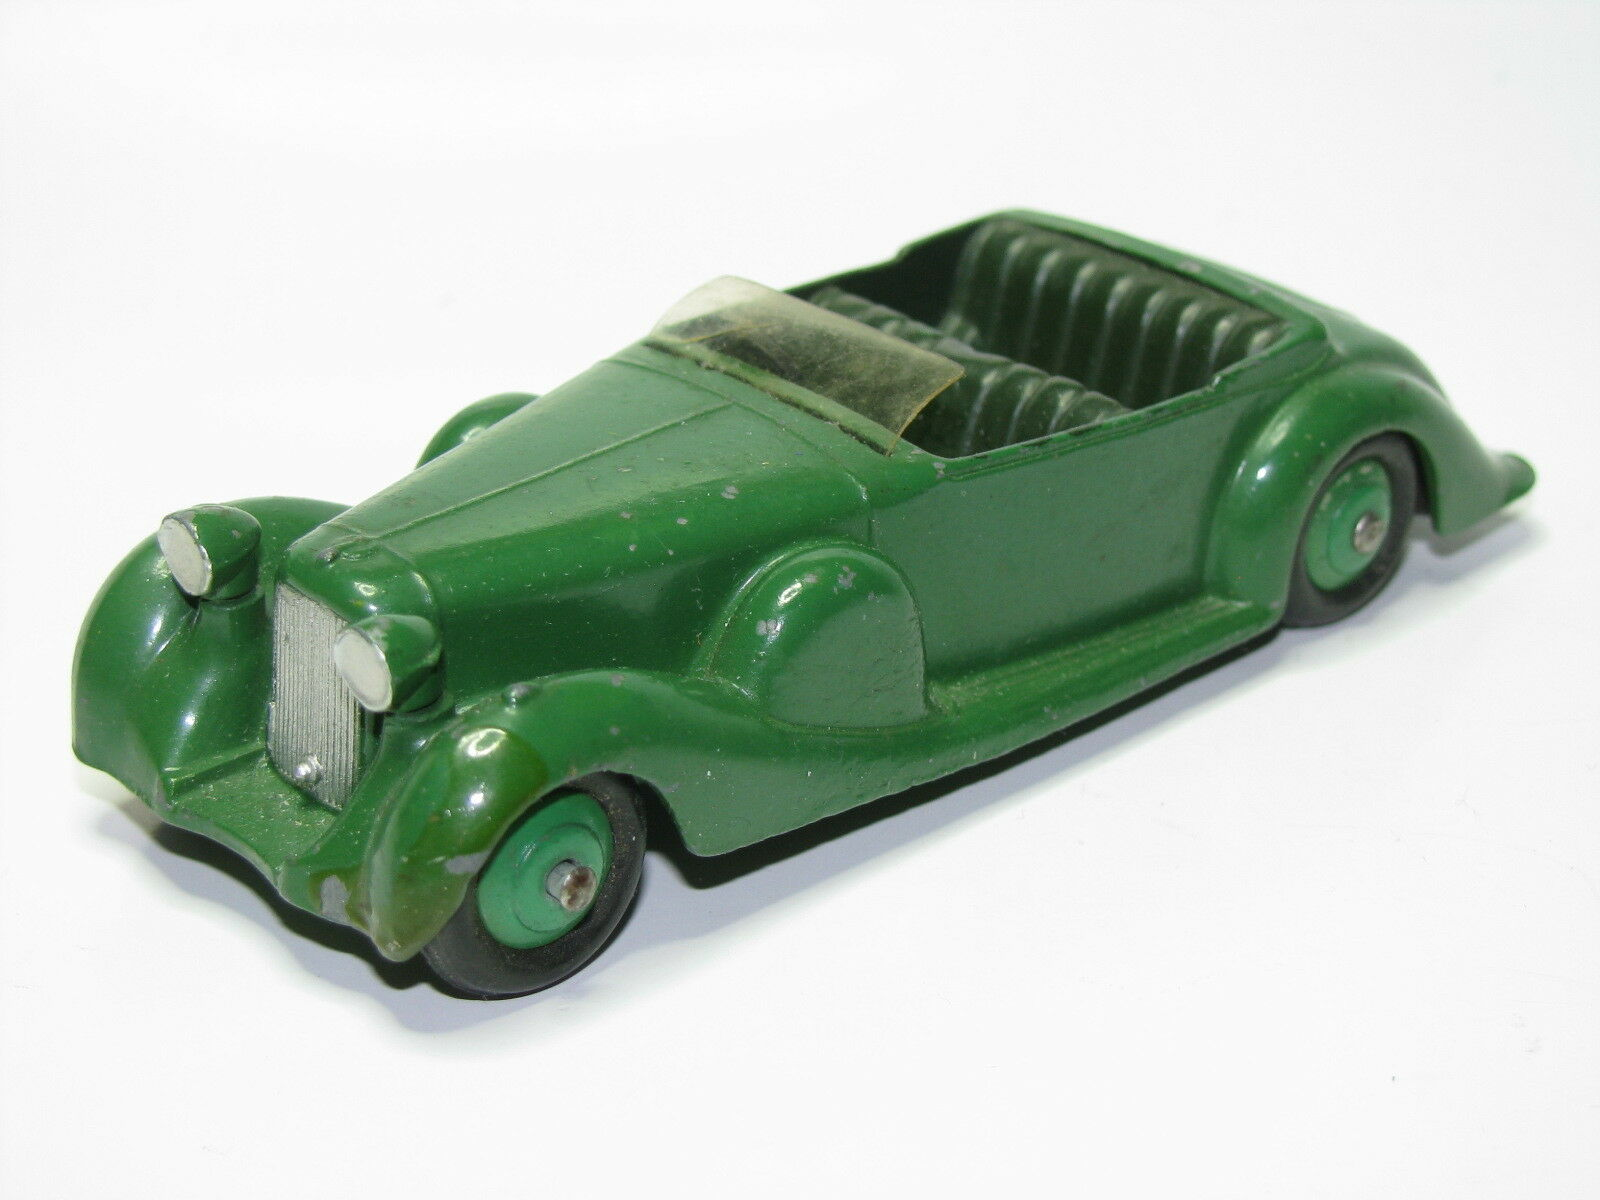 DINKY TOYS N°38C VINTAGE LAGONDA - EXCELLENT CONDITION (1950's)